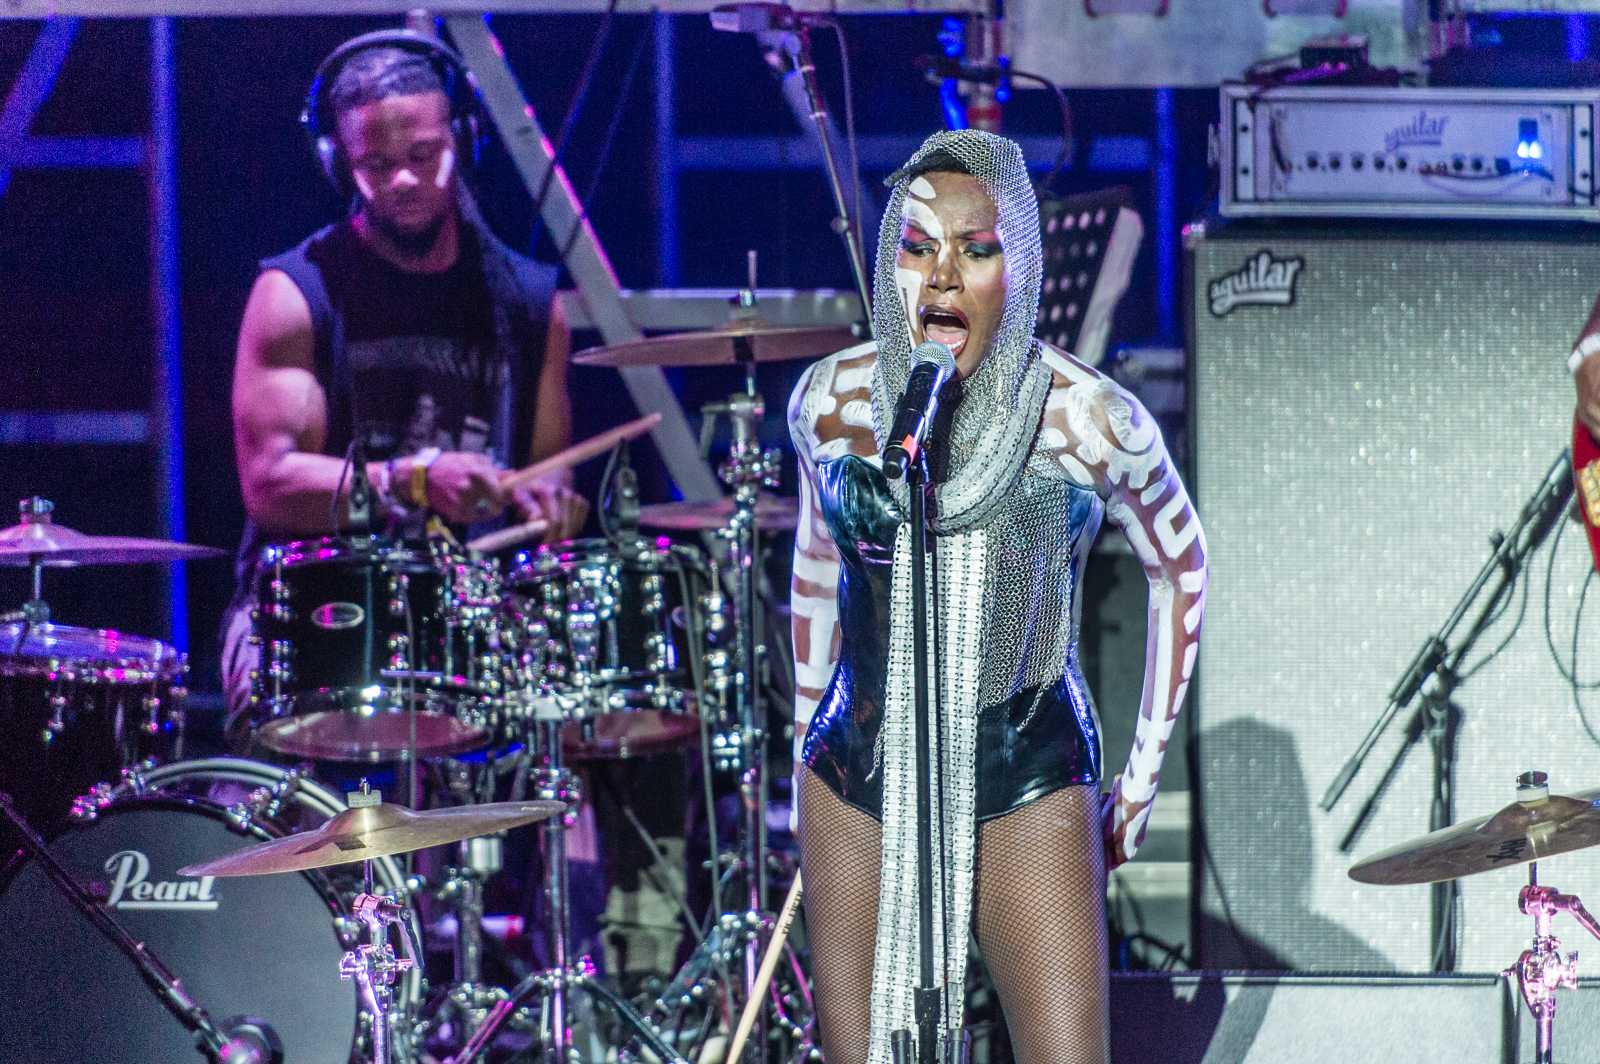 Grace Jones performs during WorldPride NYC 2019 on Pride Island on June 29, 2019 in New York City.